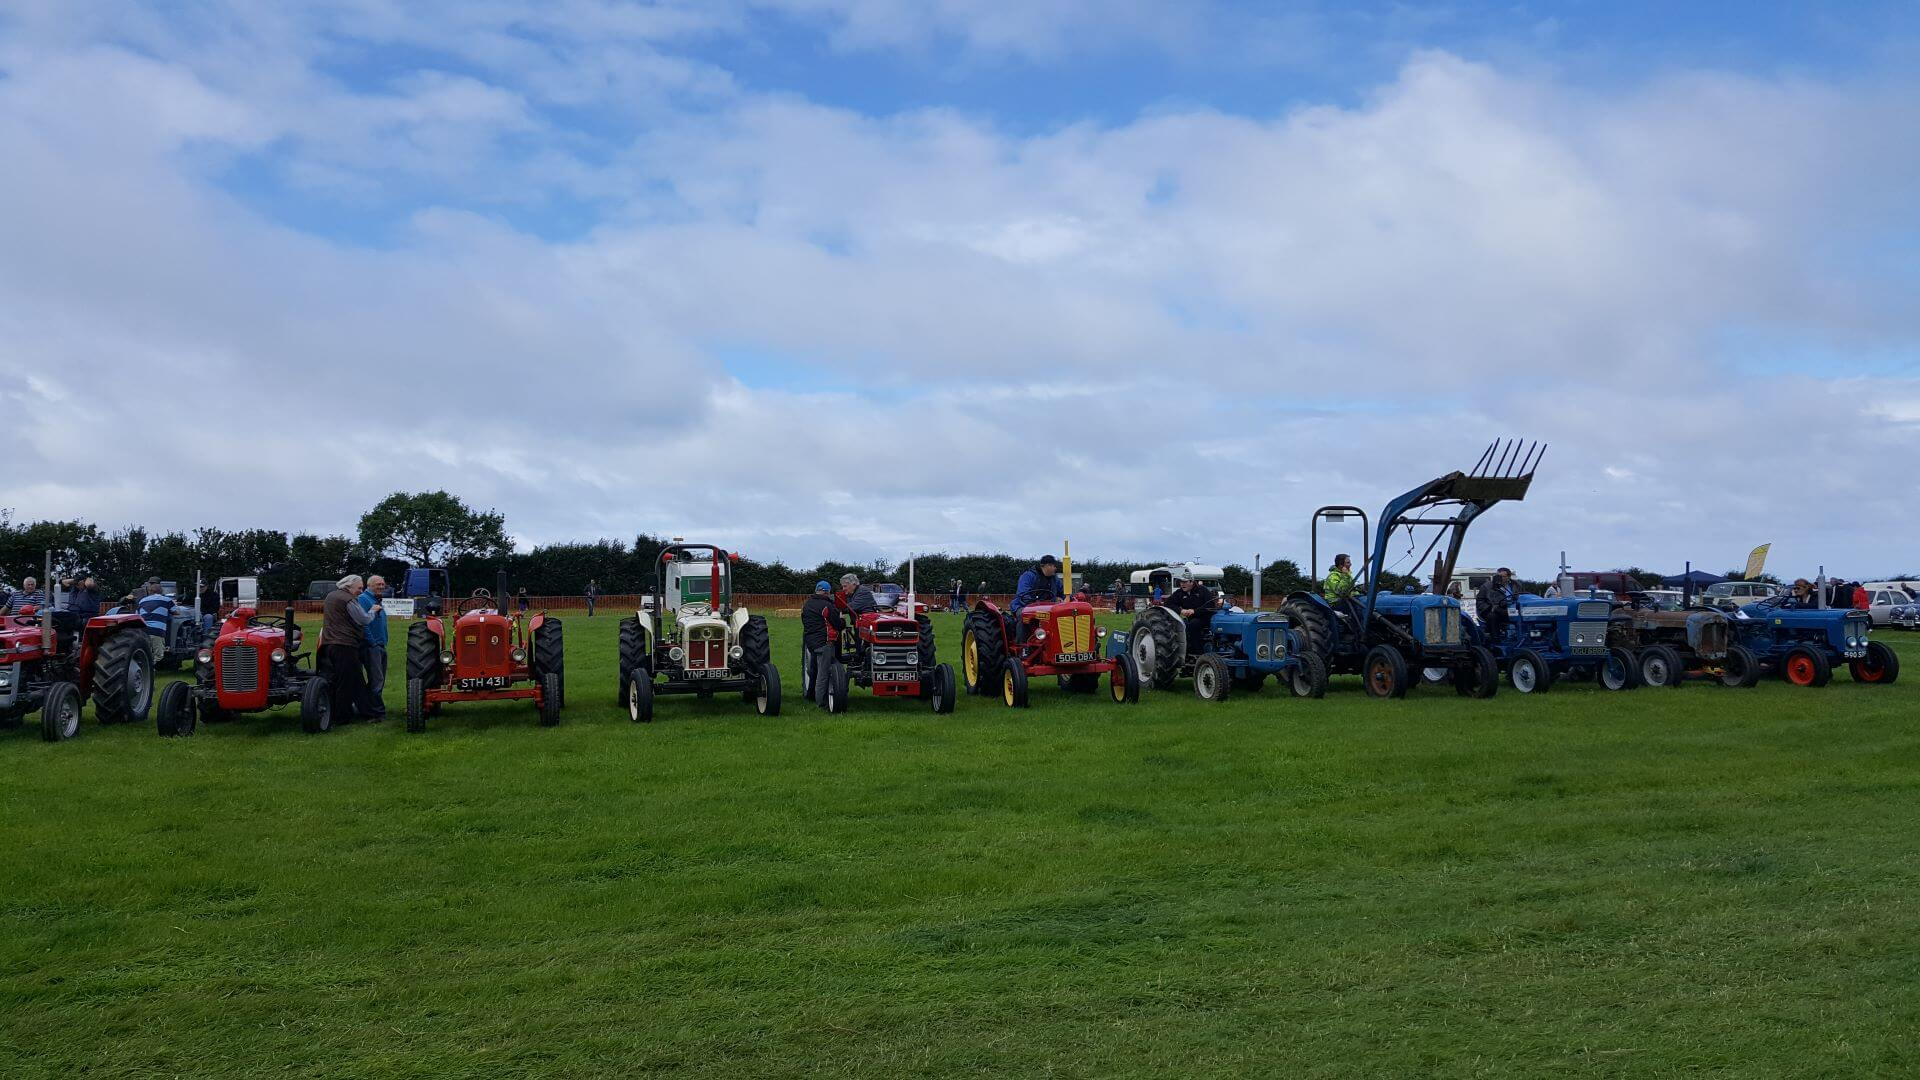 Events in West Wales - Vintage tractor rally